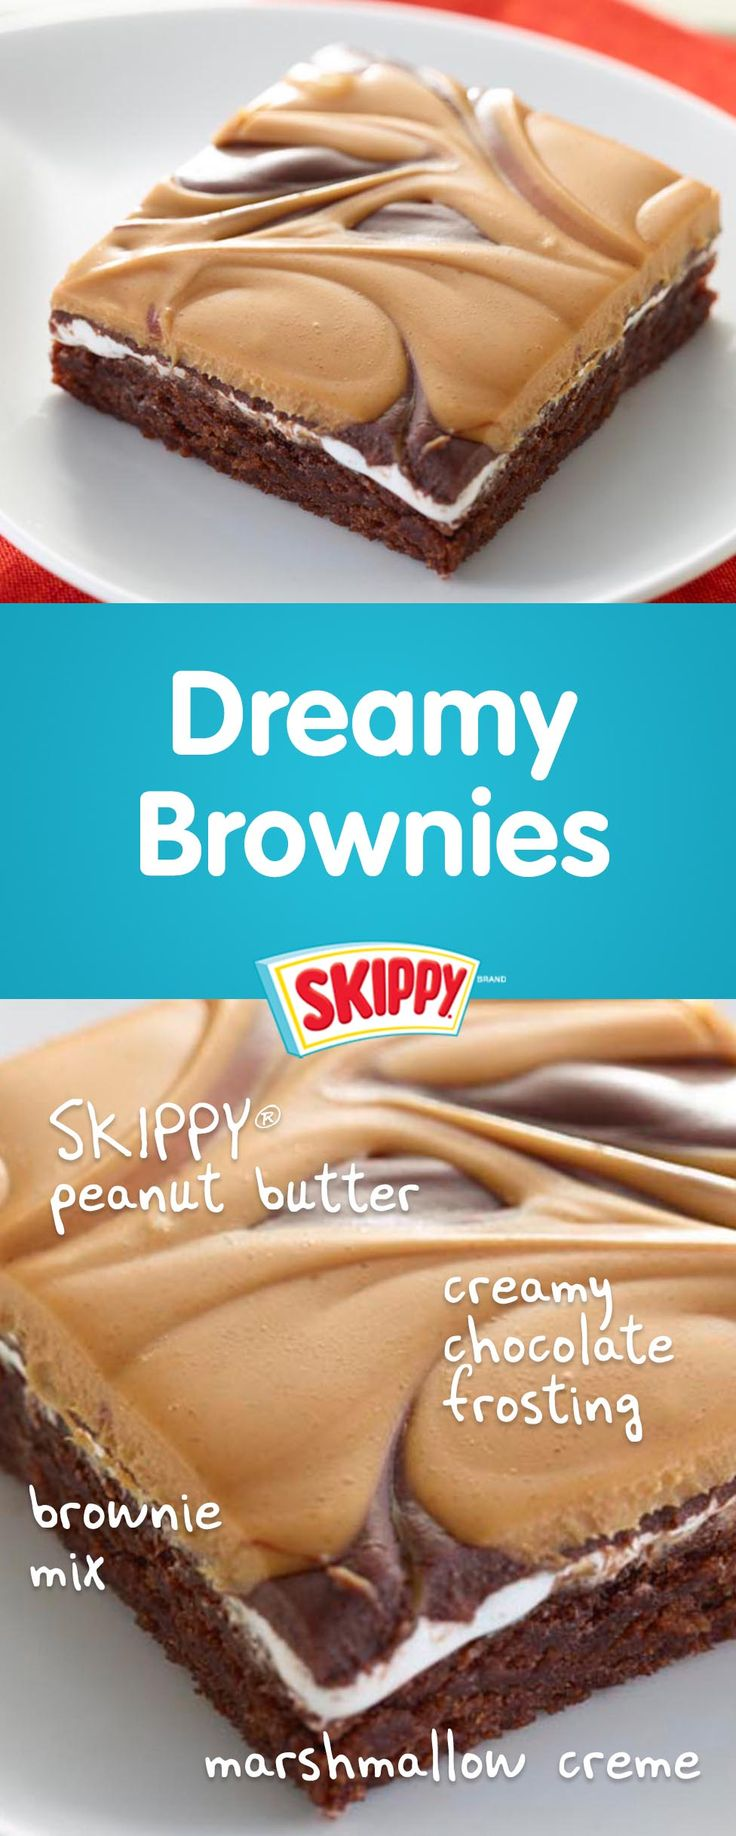 Pinch me. These  brownies are dreamy.    SKIPPY® Peanut Butter    holiday baking   peanut  butter bars   peanut butter  brownies